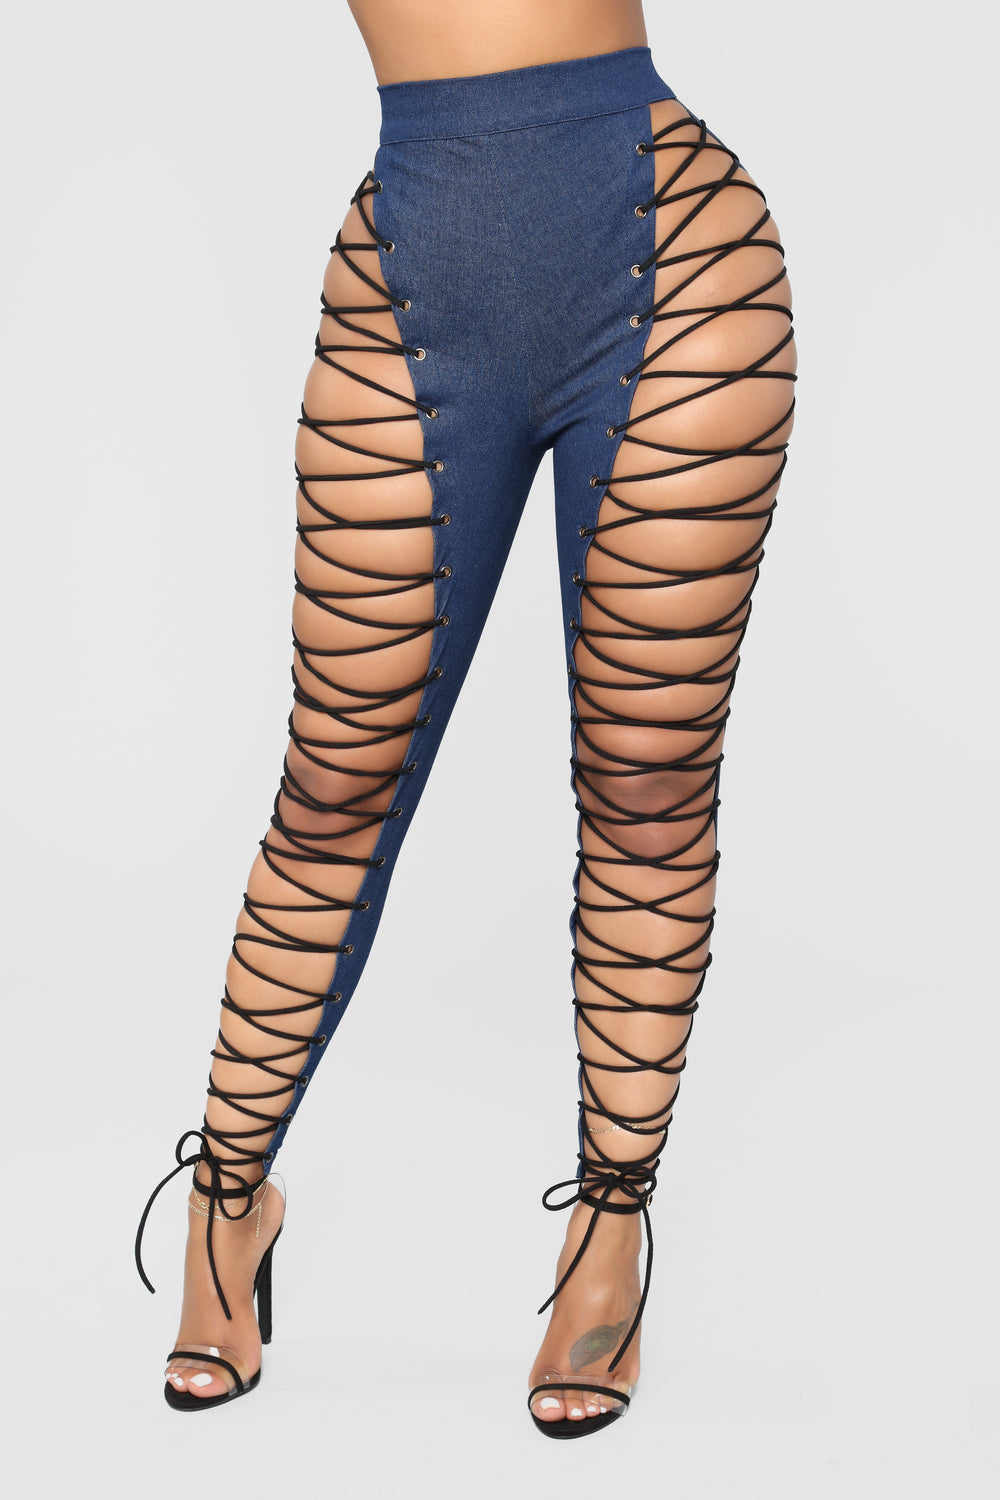 Up For Anything Lace Up Jeans - Dark Denim